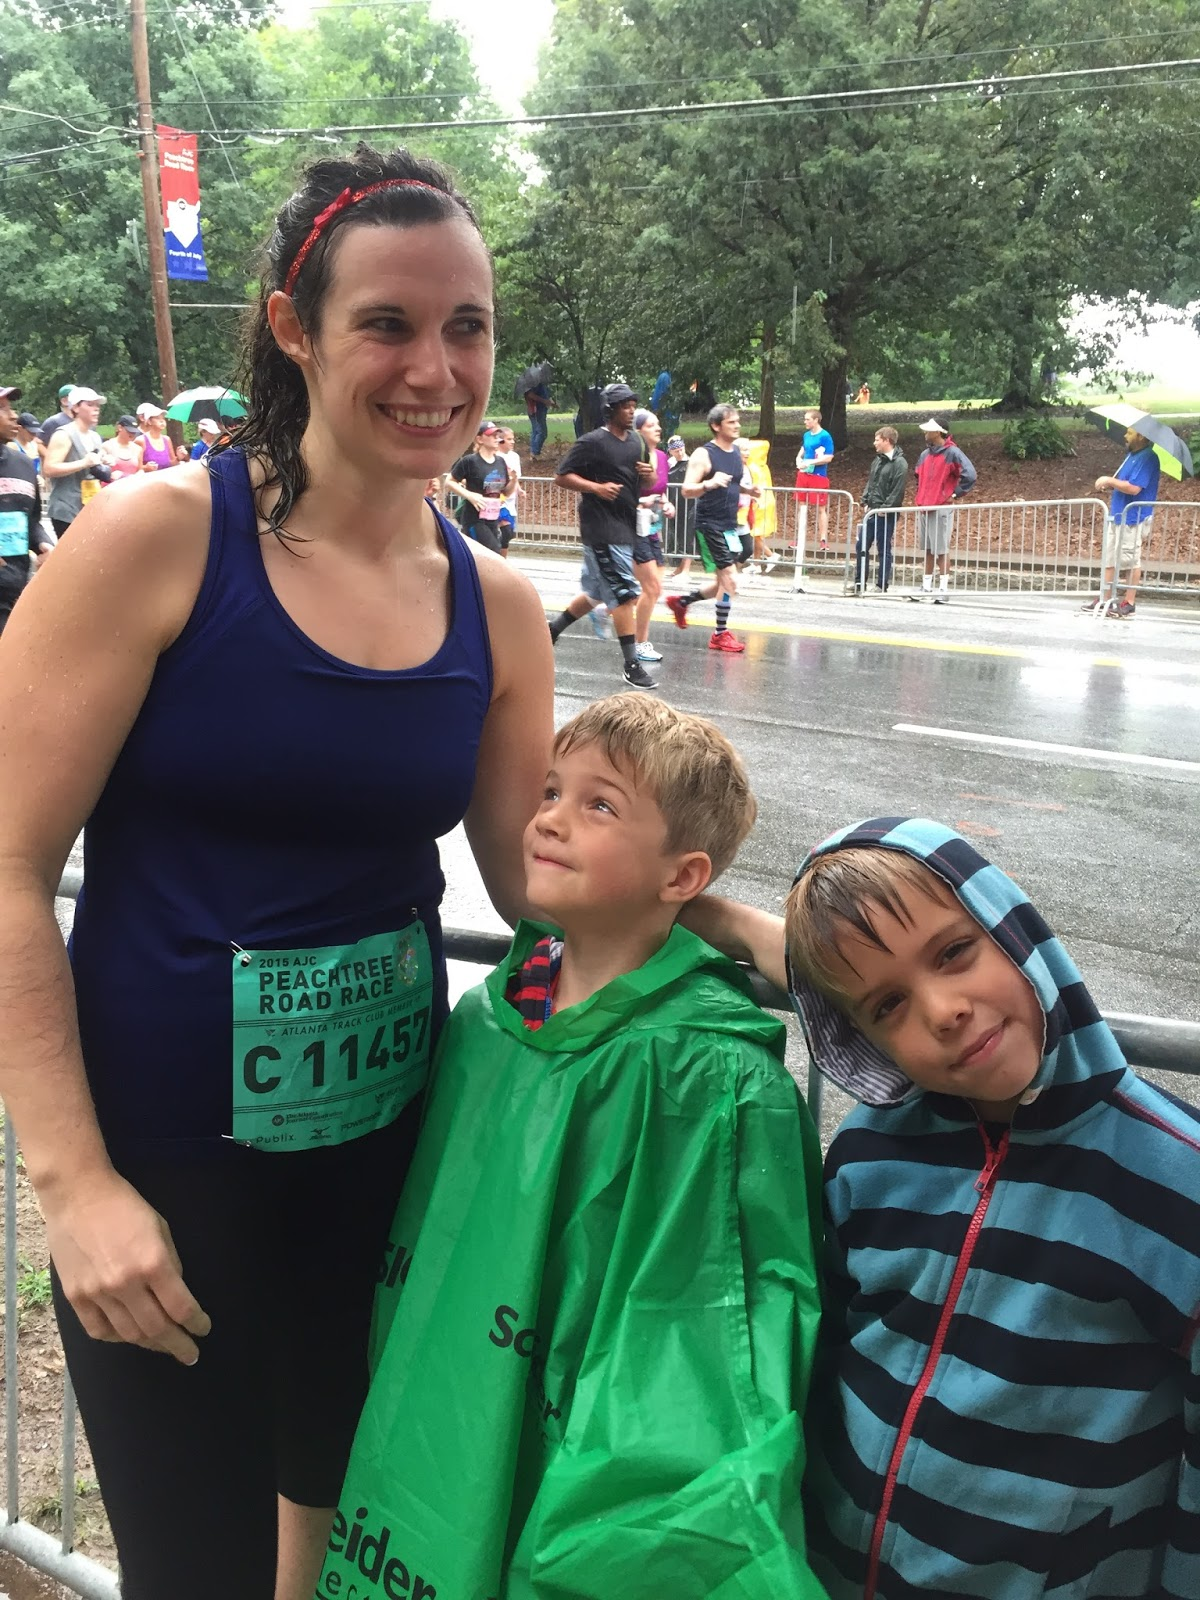 Peachtree road race results 2015 - We Took A Bunch Of Pictures And Then Walked Over To The Race So That I Could Watch Cheer For Some Of The Finishers